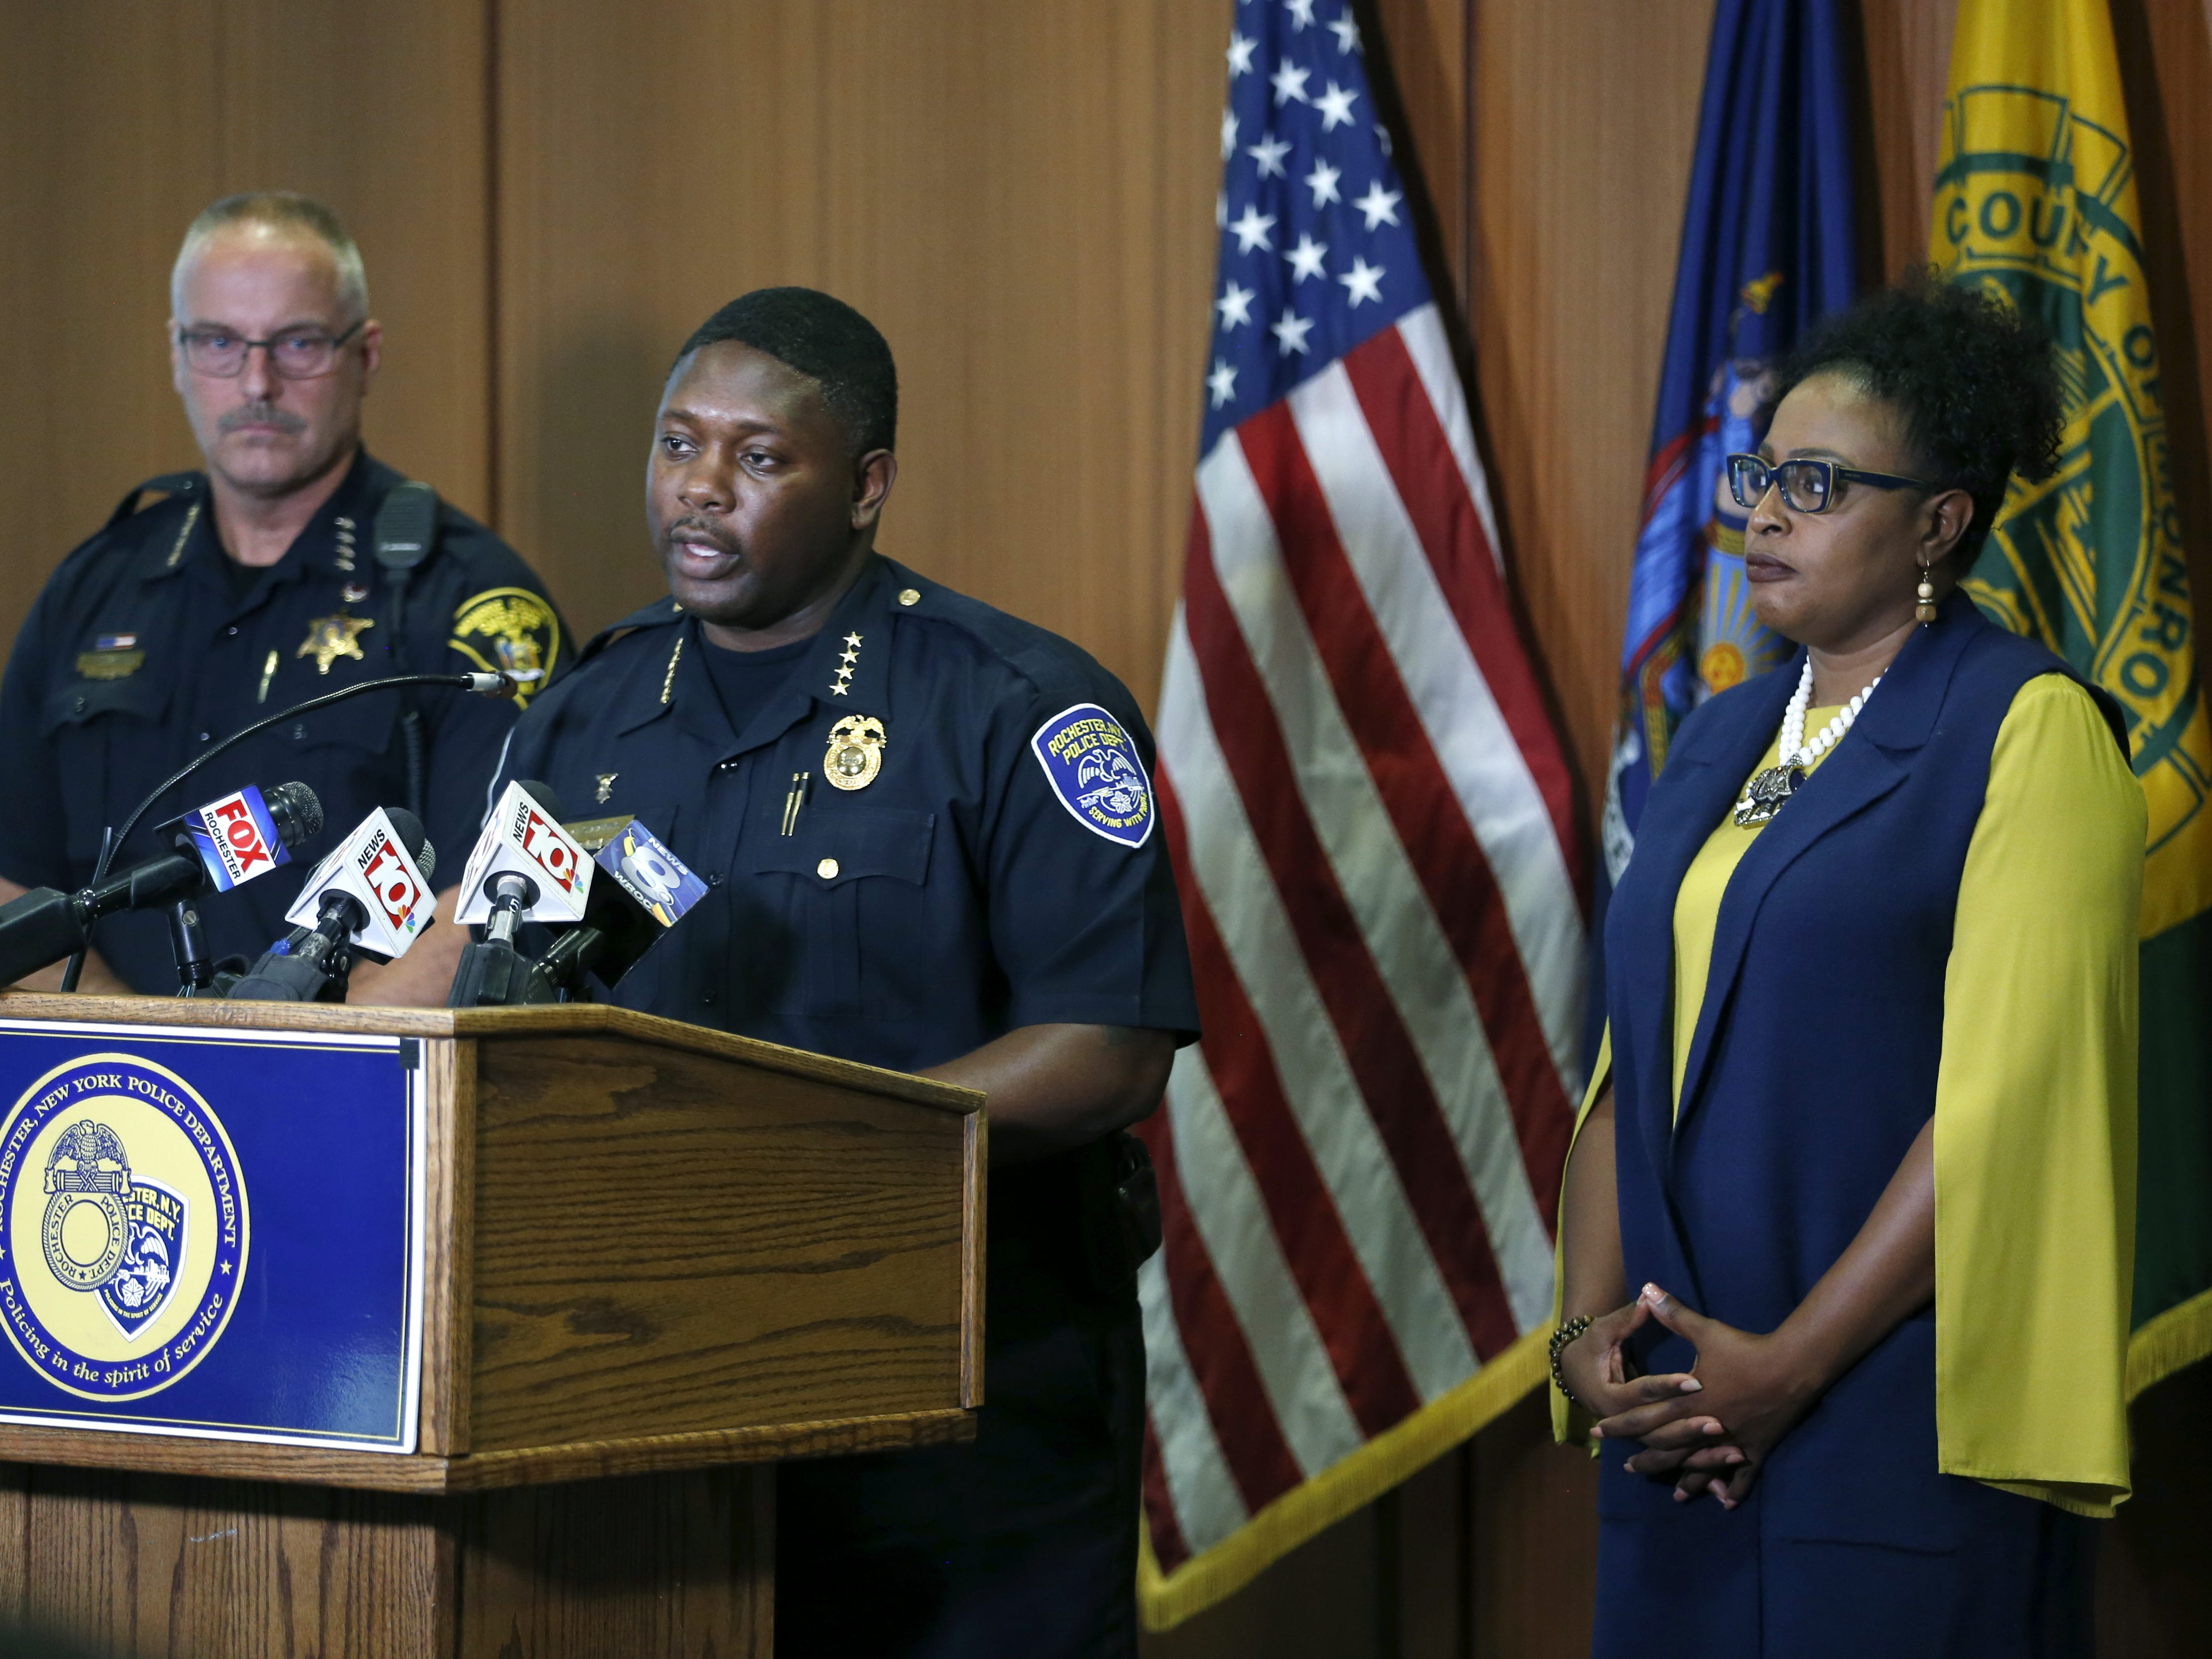 Monroe County Sheriff Todd Baxter, acting Police Chief Mark Simmons and Mayor Lovely Warren during a press conference regarding today's shootings and police high-speed pursuit.